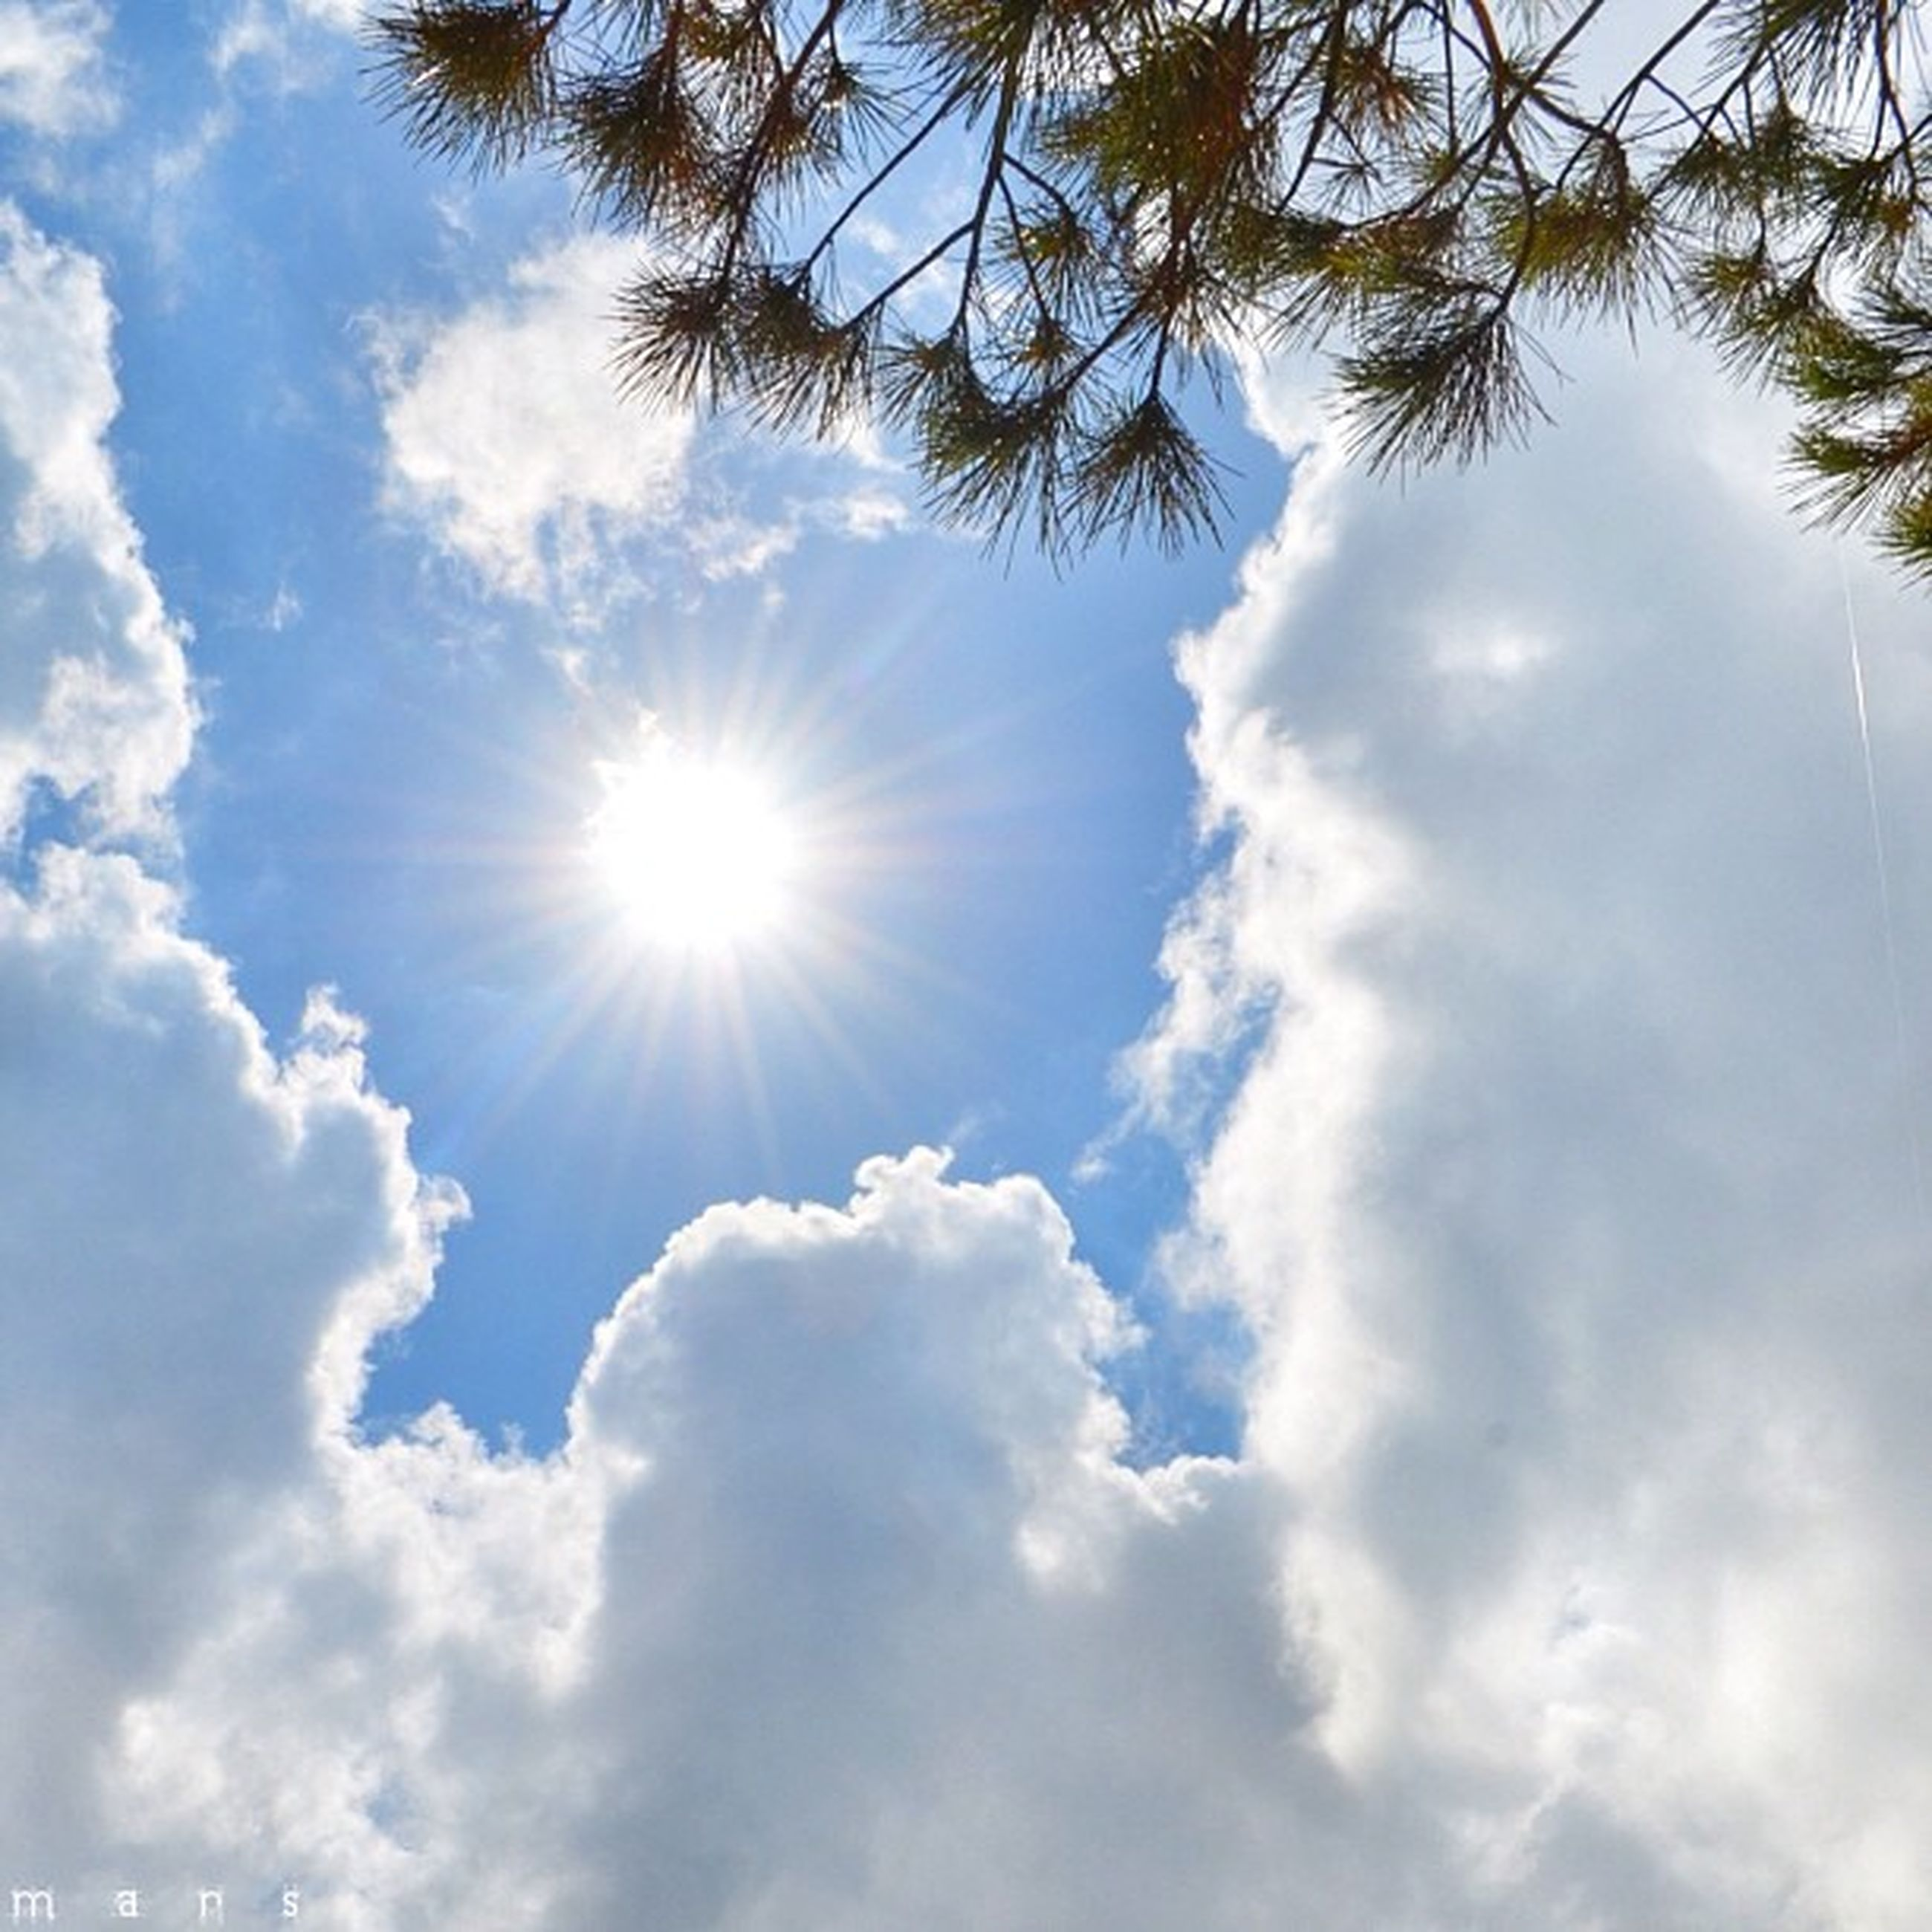 sun, sky, low angle view, sunbeam, sunlight, cloud - sky, beauty in nature, tranquility, lens flare, nature, tranquil scene, scenics, cloud, bright, tree, sunny, cloudy, blue, day, idyllic